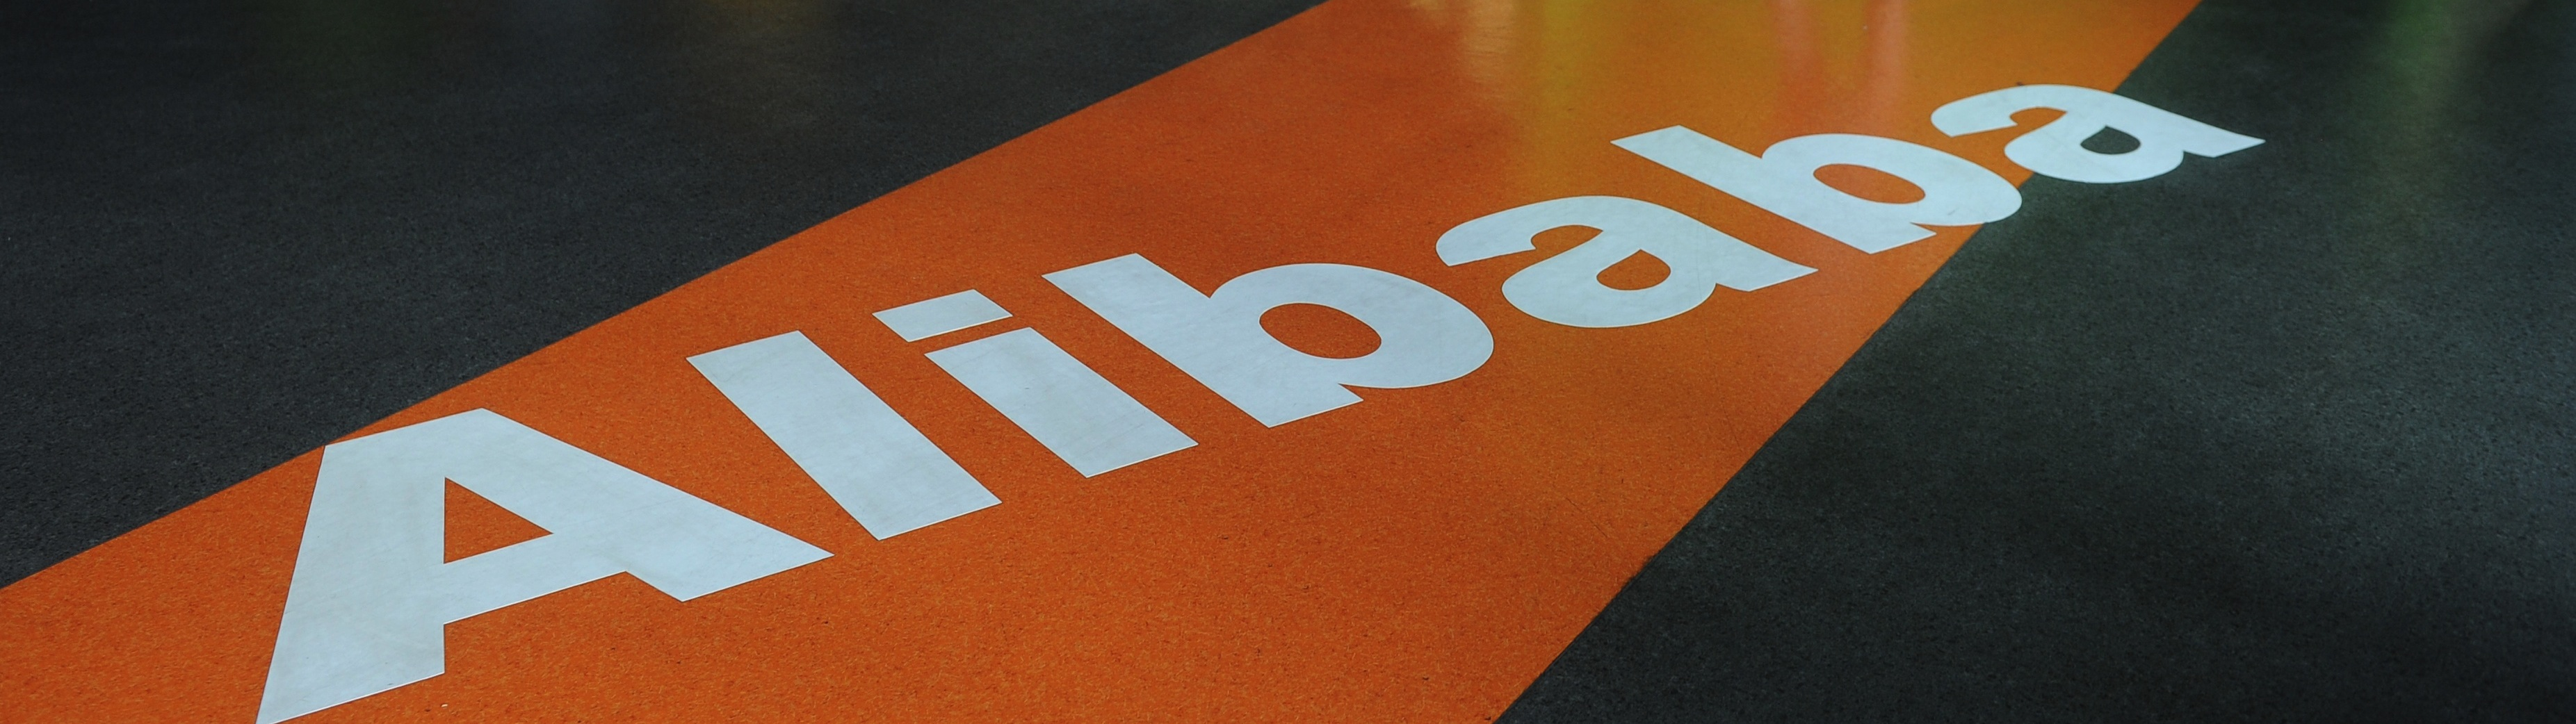 Alibaba Invests in Online Video and Mobile Search